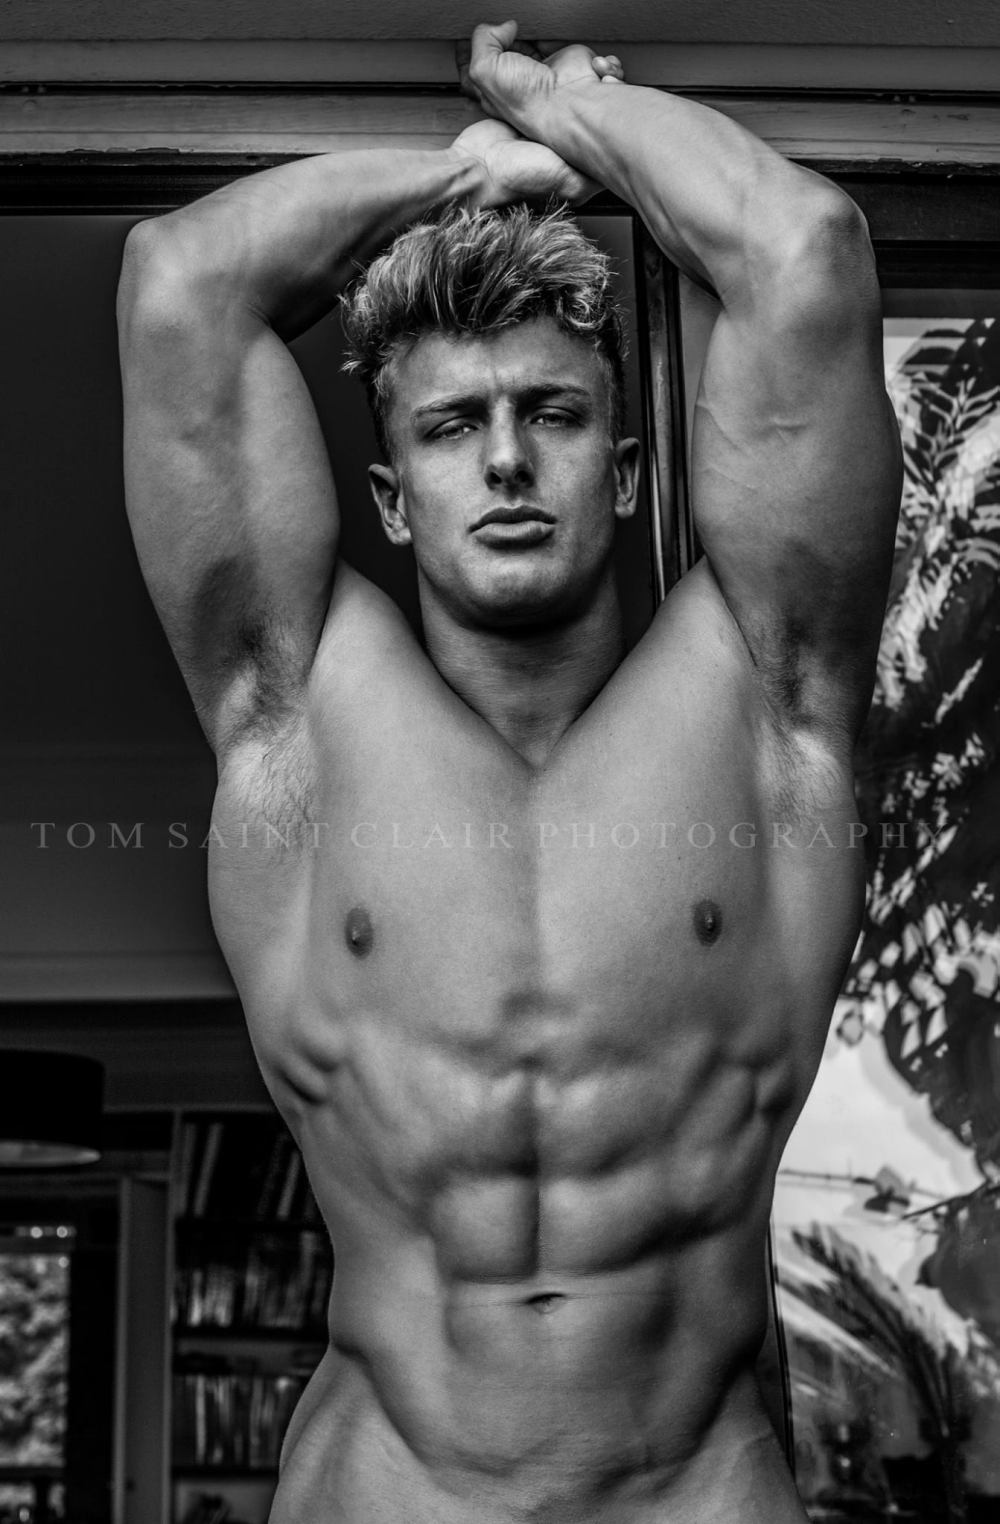 Matthew Vose by Tom Saint Clair